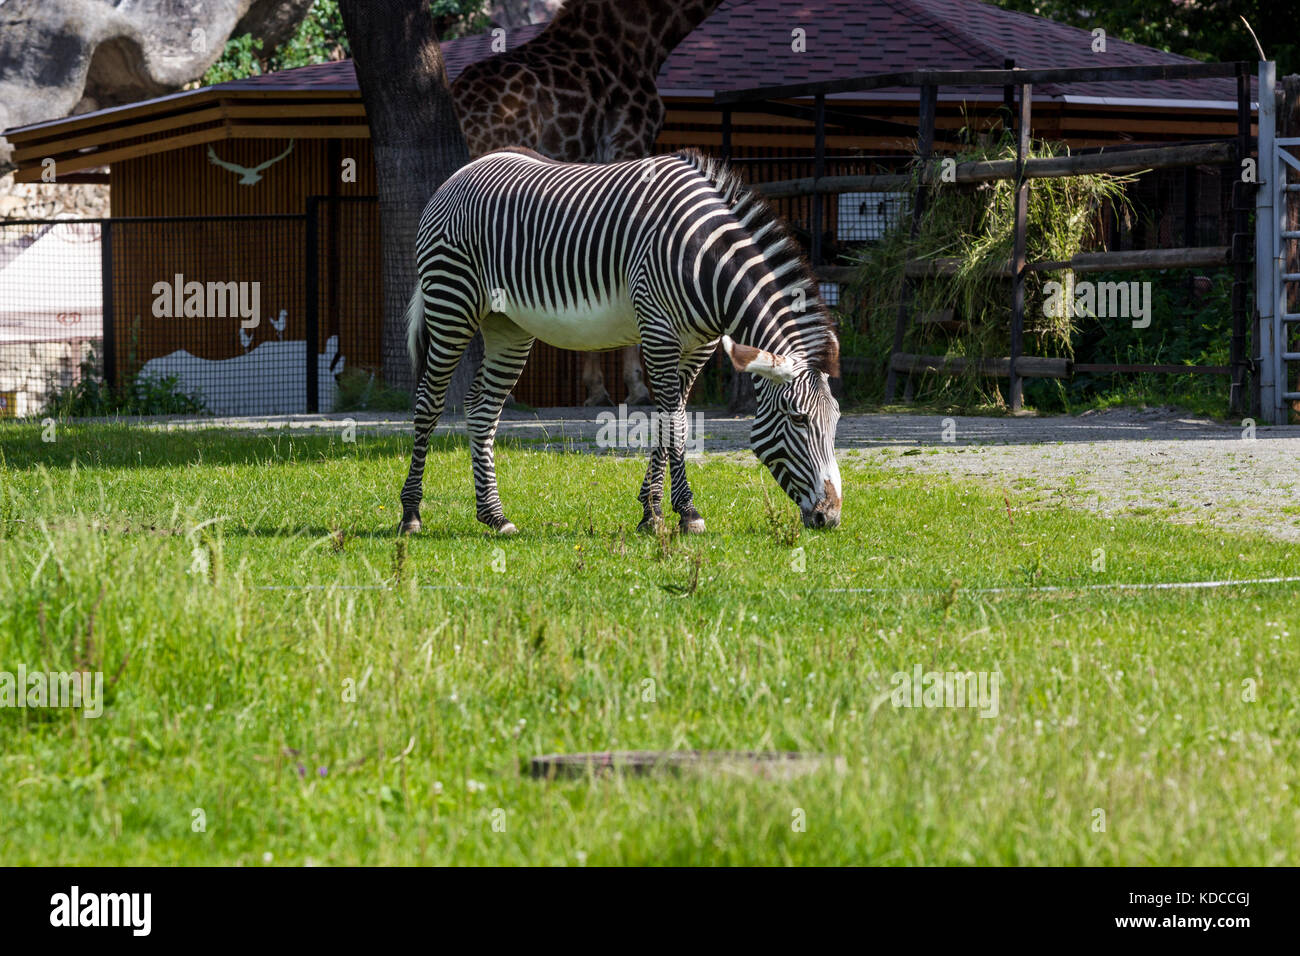 A female zebra grazes in the enclosure of the zoo, on a hot summer day - Stock Image